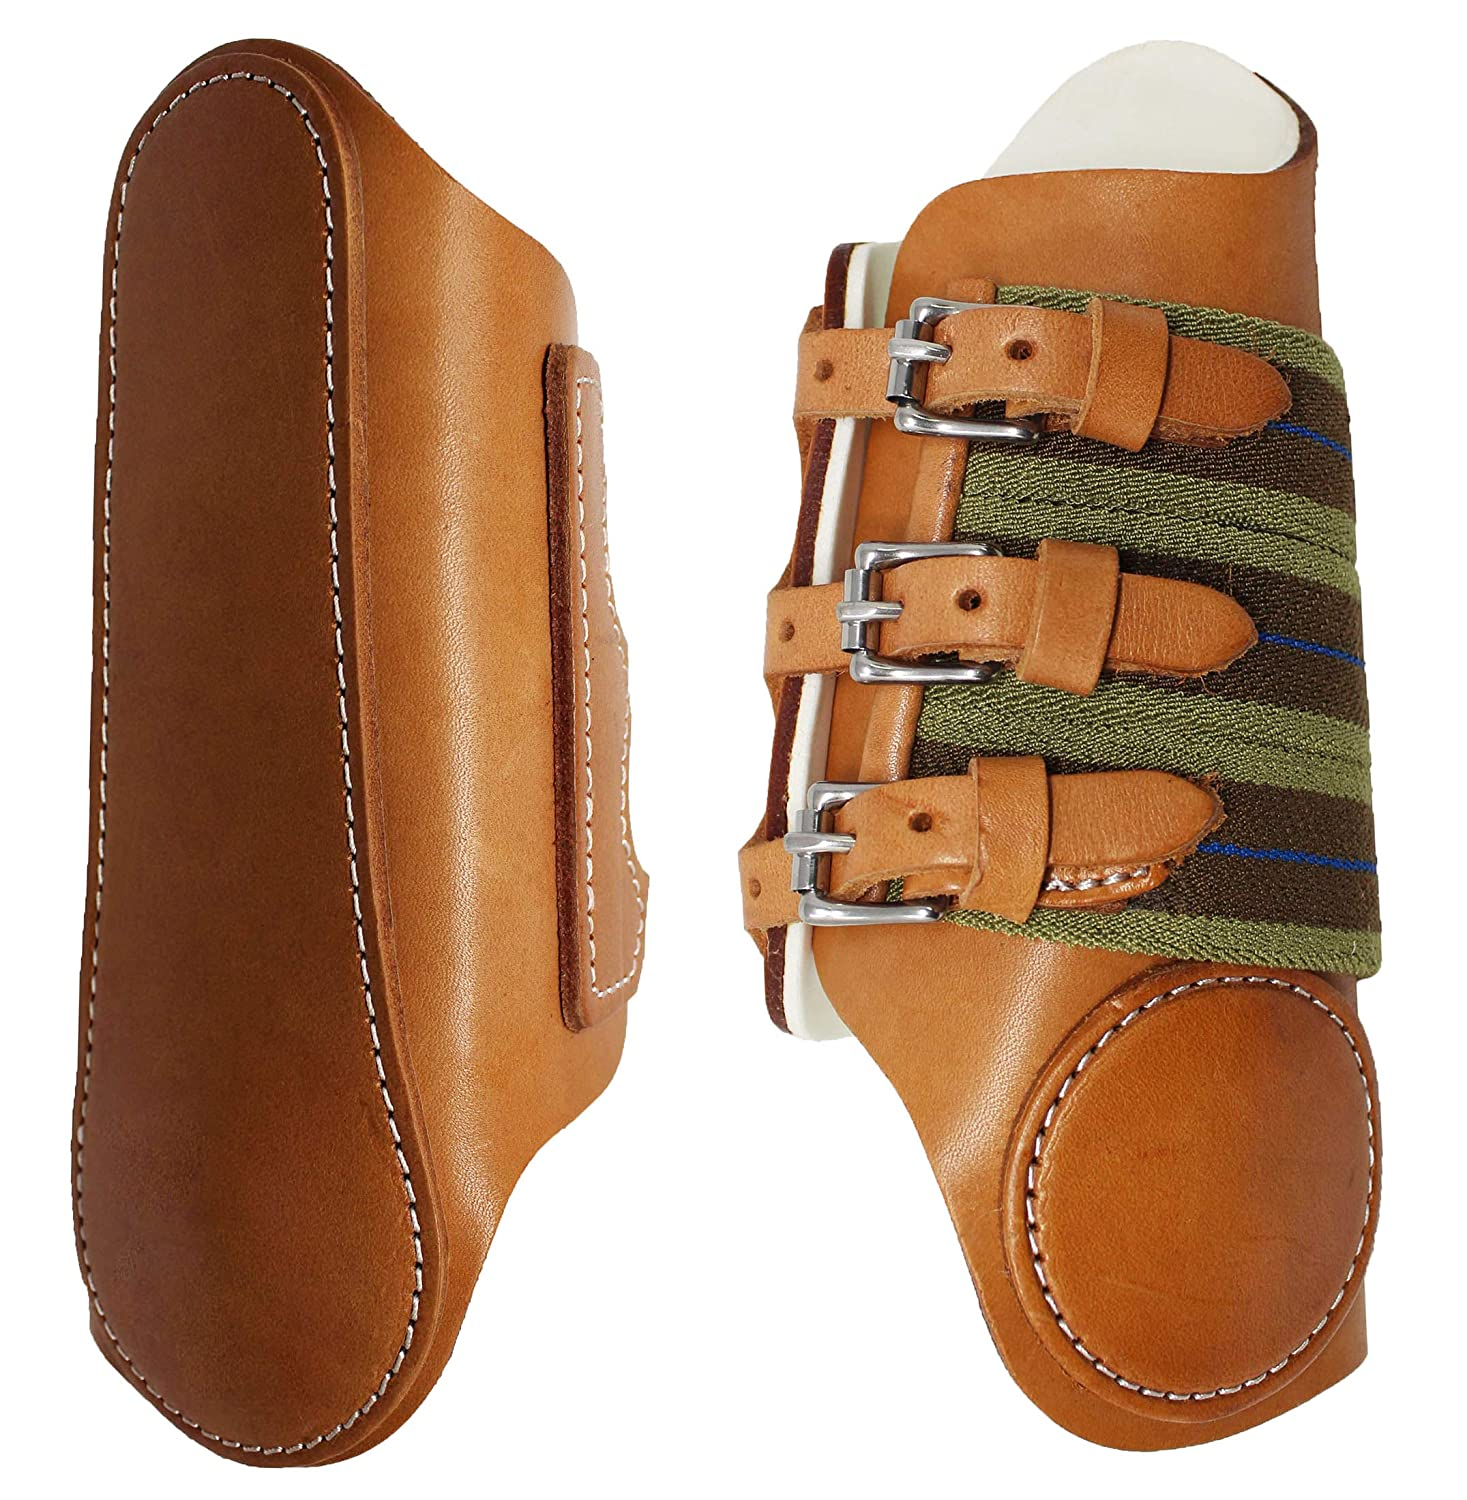 Amish Horse Equine Leather Sports Medicine Splint Boots Made in USA Tack 4121